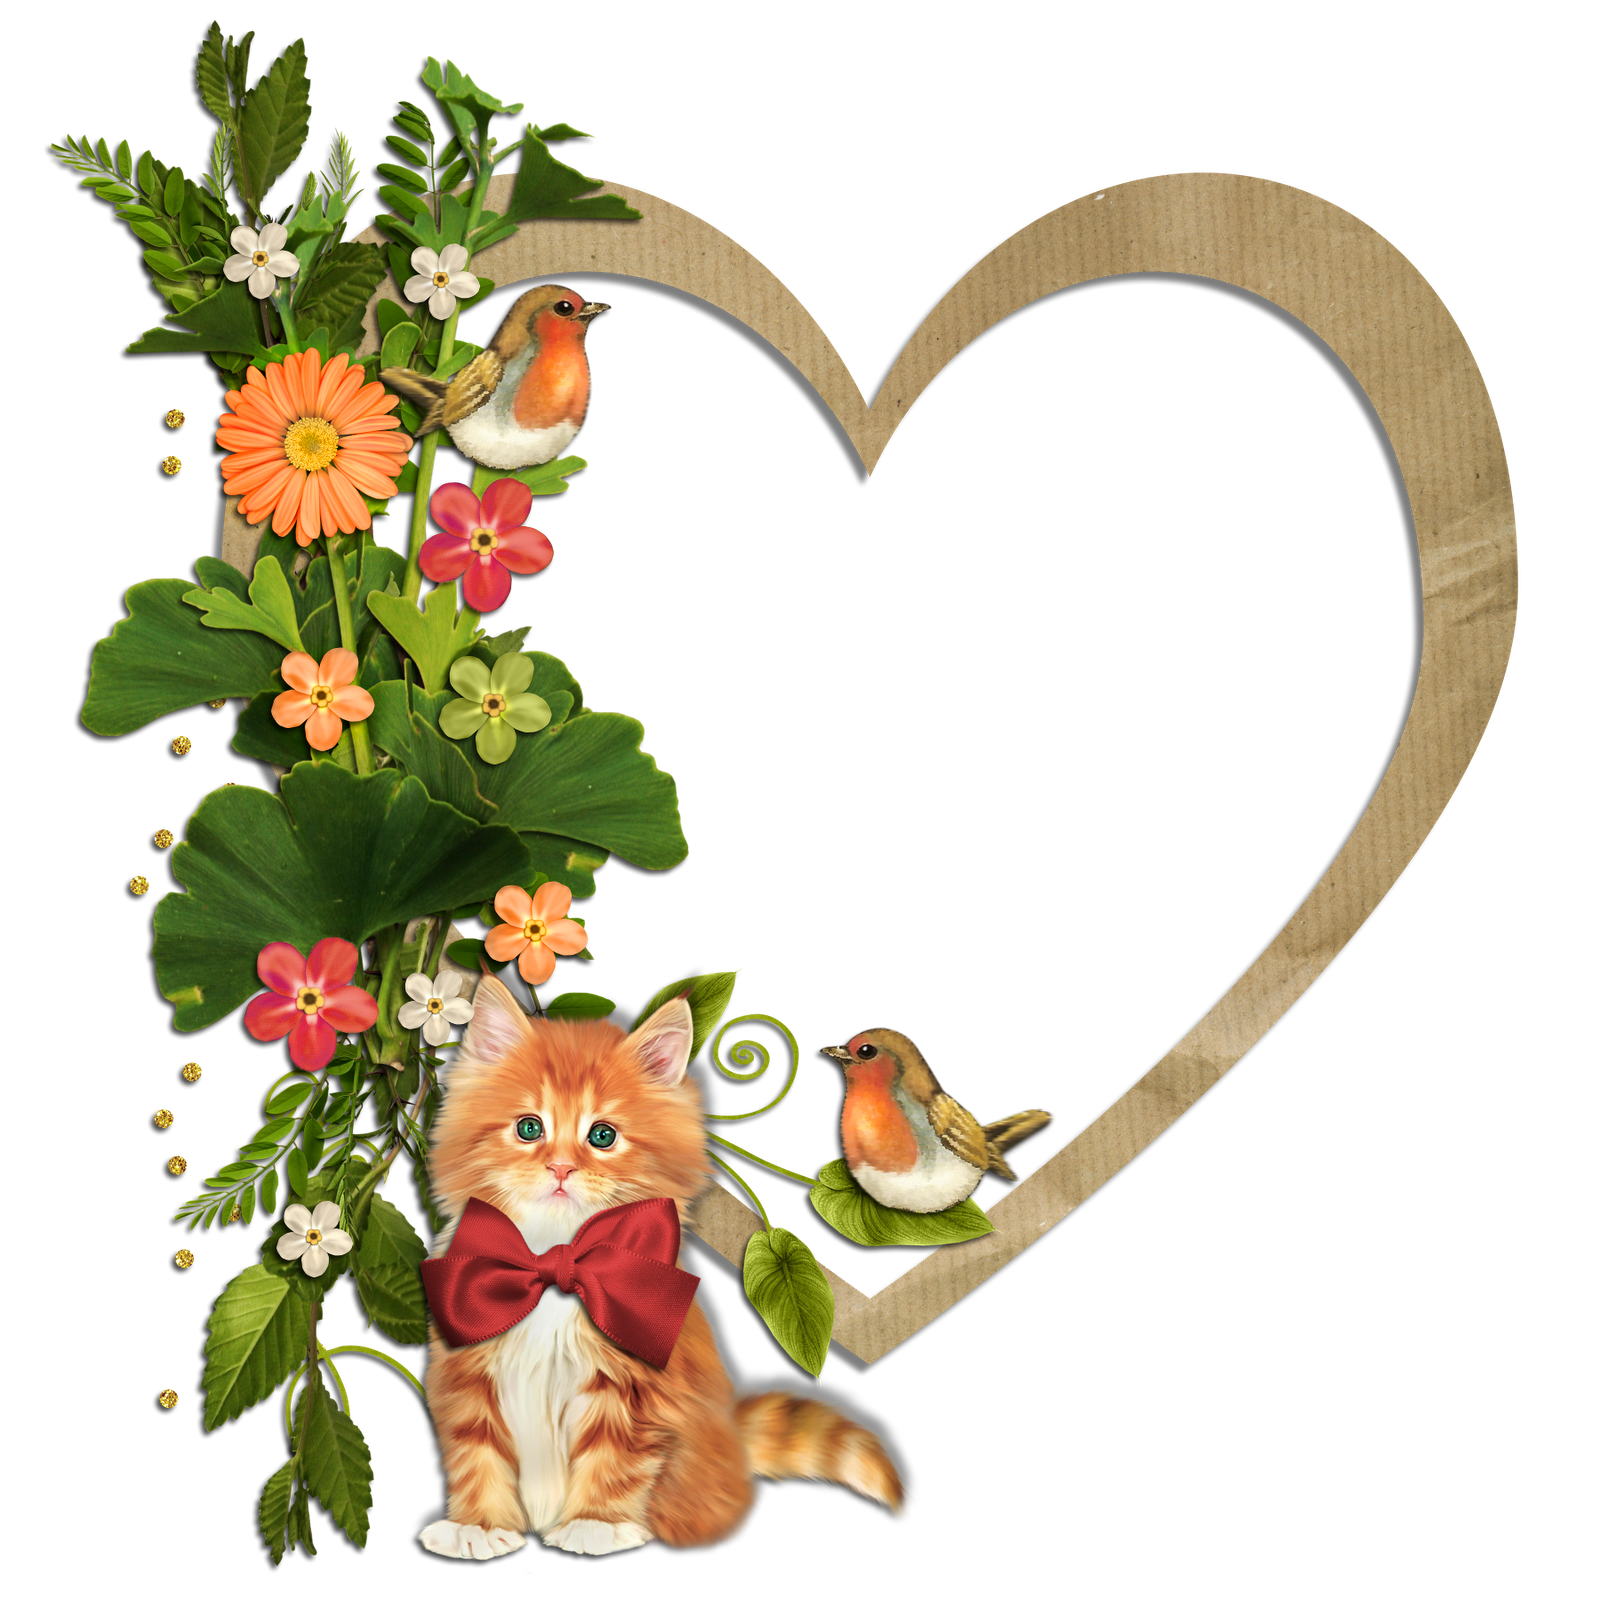 Clipart roses kitty. Birds and flowers at